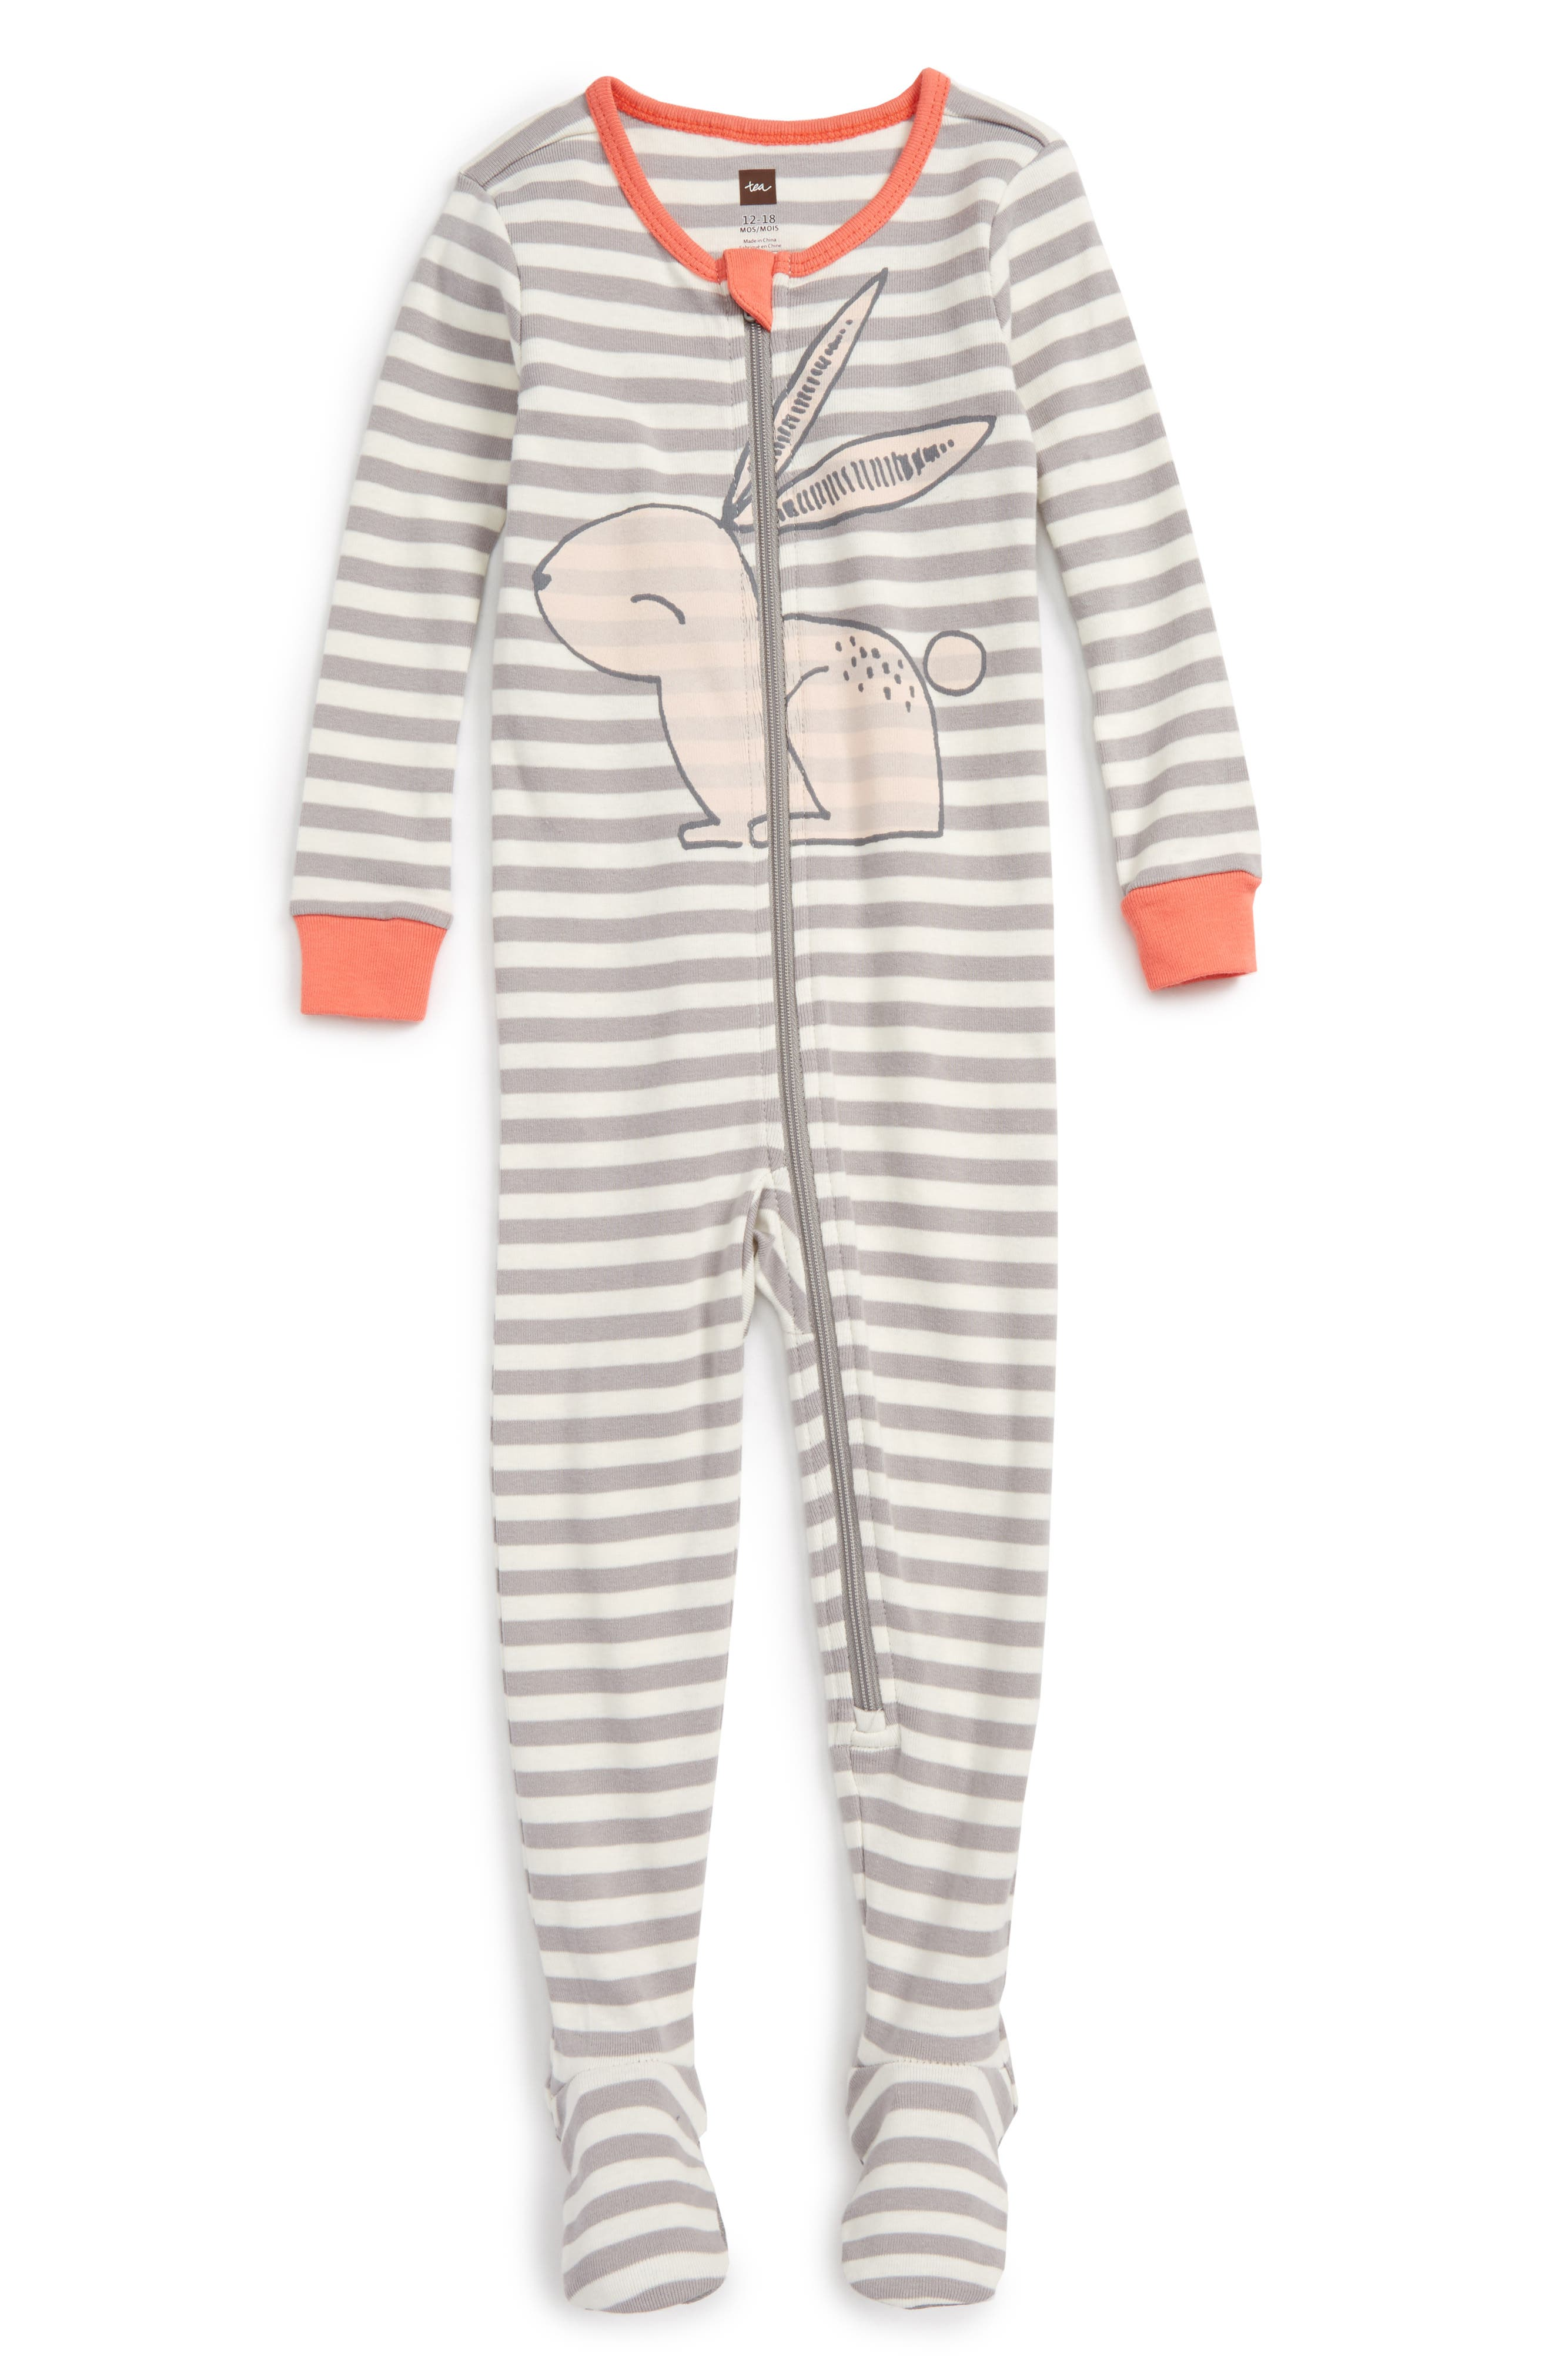 Rabaid Fitted One-Piece Pajamas,                             Main thumbnail 1, color,                             052